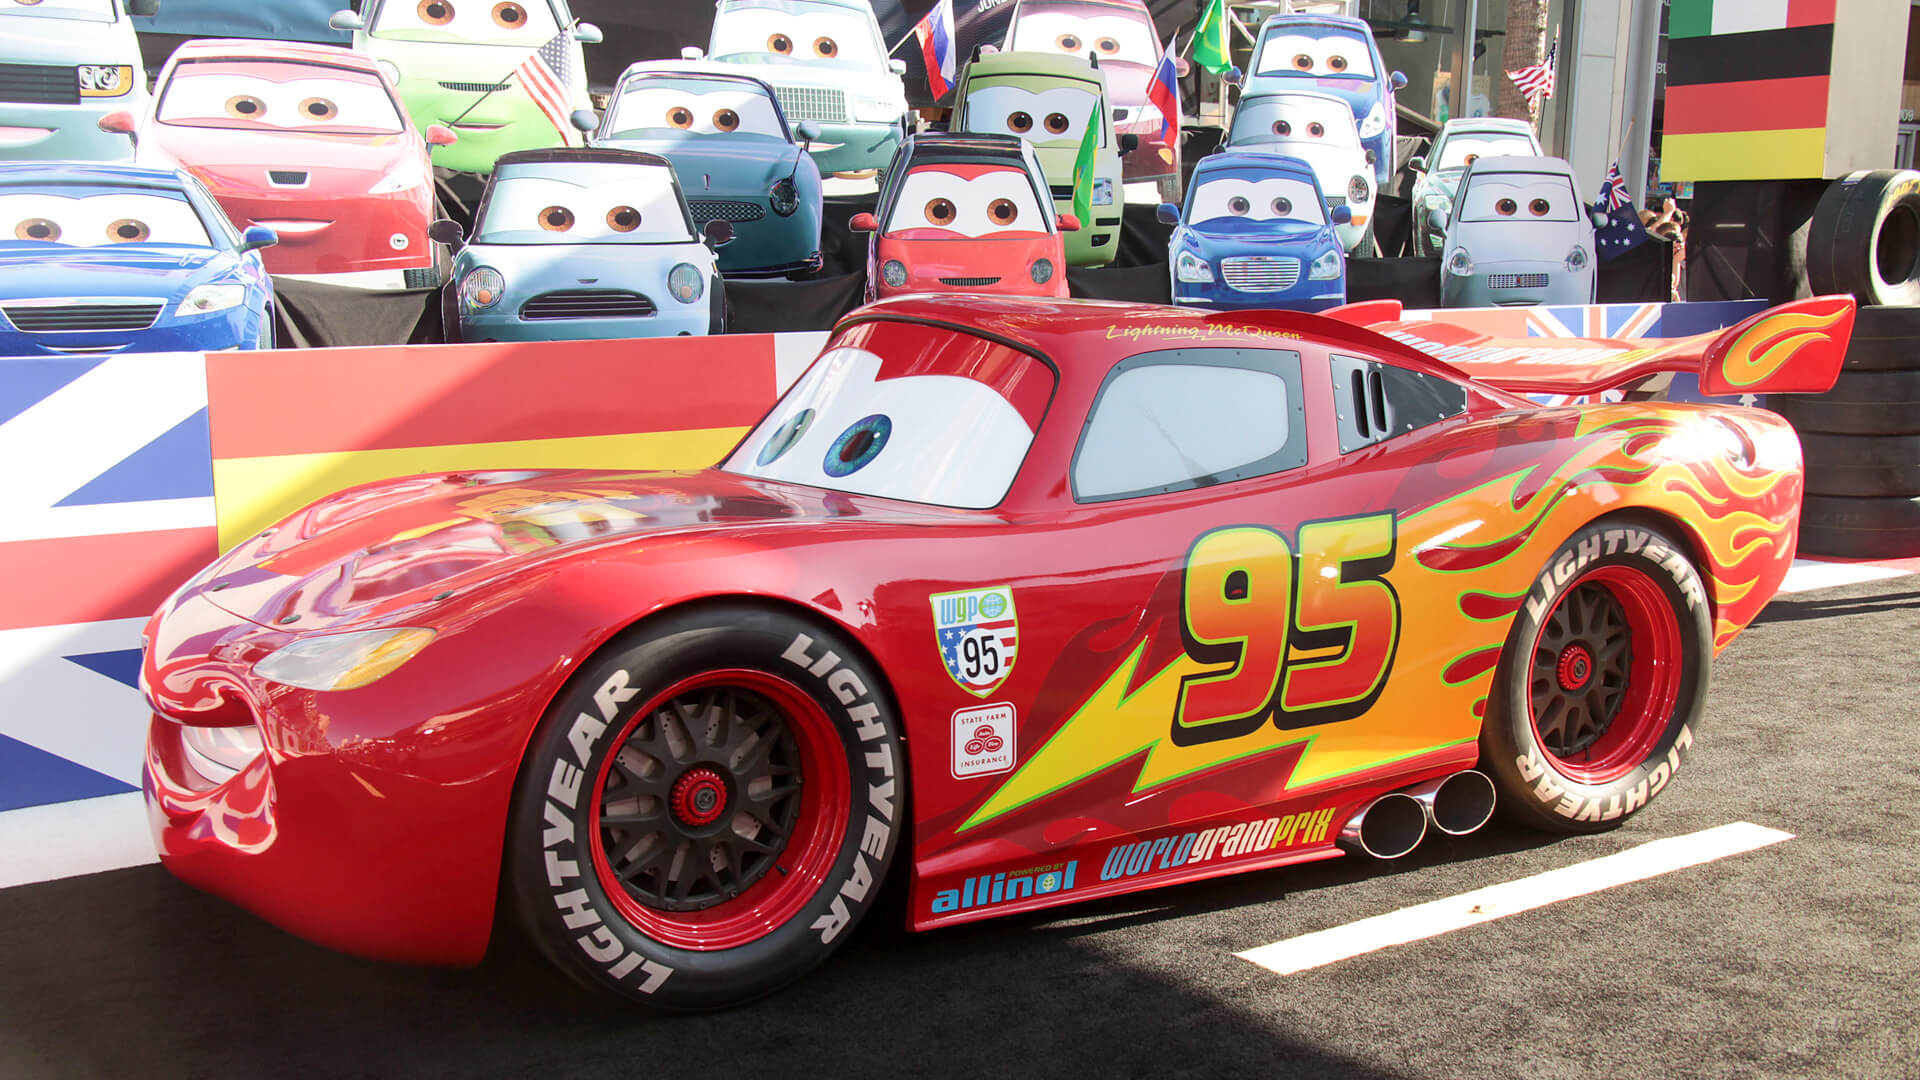 """Slide 3 of 21: Location: Orlando, Florida Admission price: $109+ Ride opening: March 31, 2019 With the price of admission to Disney's Hollywood Studios, you get access to some incredible rides, one of which is the new Lightning McQueen's Racing Academy. The ride is great for all ages, including small children, as well as park-goers with disabilities — wheelchairs can board the ride and guests can stay in their chair for the duration. The ride itself centers on none other than the star of the """"Cars"""" films, Lightning McQueen. With friends Cruz Ramirez and Tow Mater cheering him on, McQueen burns rubber in this first-of-its-kind racing simulator with a wraparound screen. When obstacles get in the way, McQueen must get back on course, so you're in for a bumpy ride. As an added bonus, there's a photo opportunity just outside the Academy with racing instructor Ramirez. Look:18 Disney Hacks That'll Save You Hundreds on Your Next Magical Visit"""